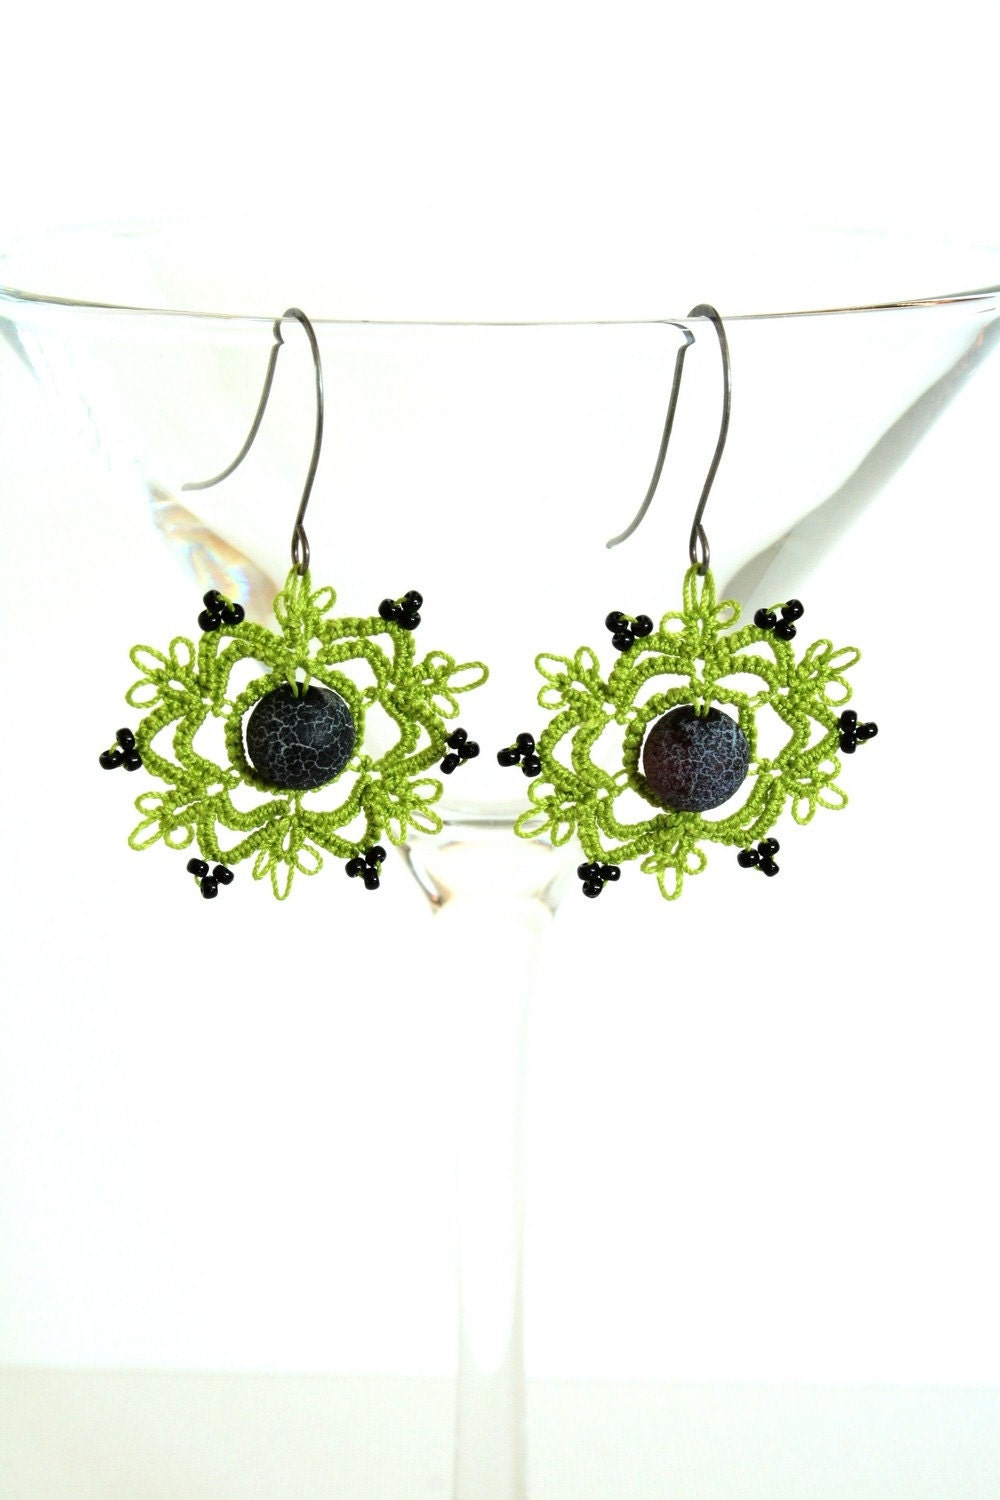 Black and green crocheted earrings